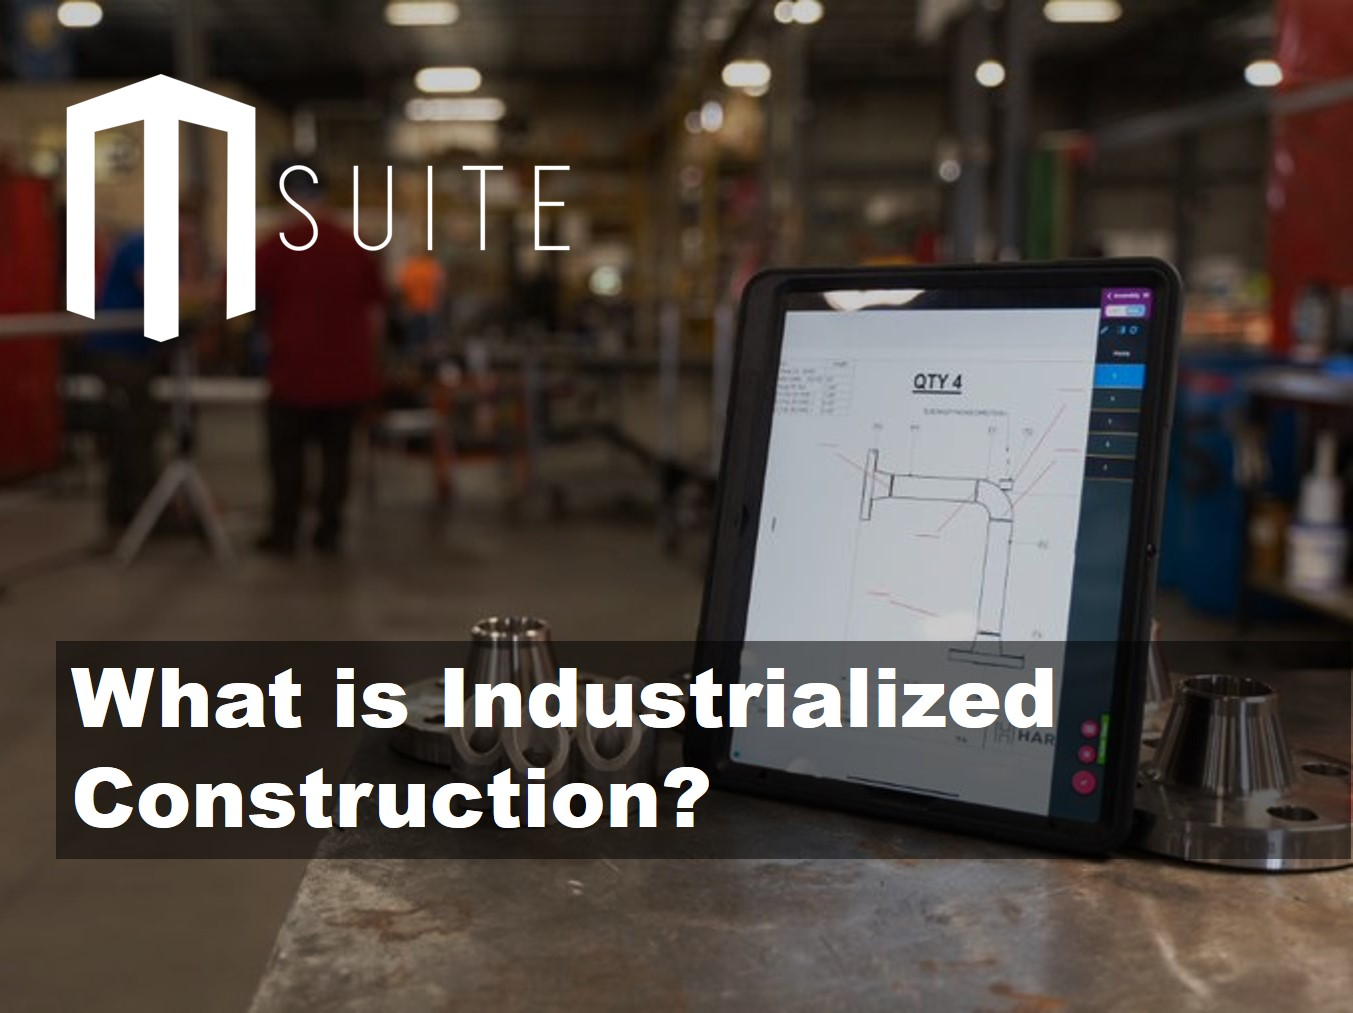 What is Industrialized Construction?